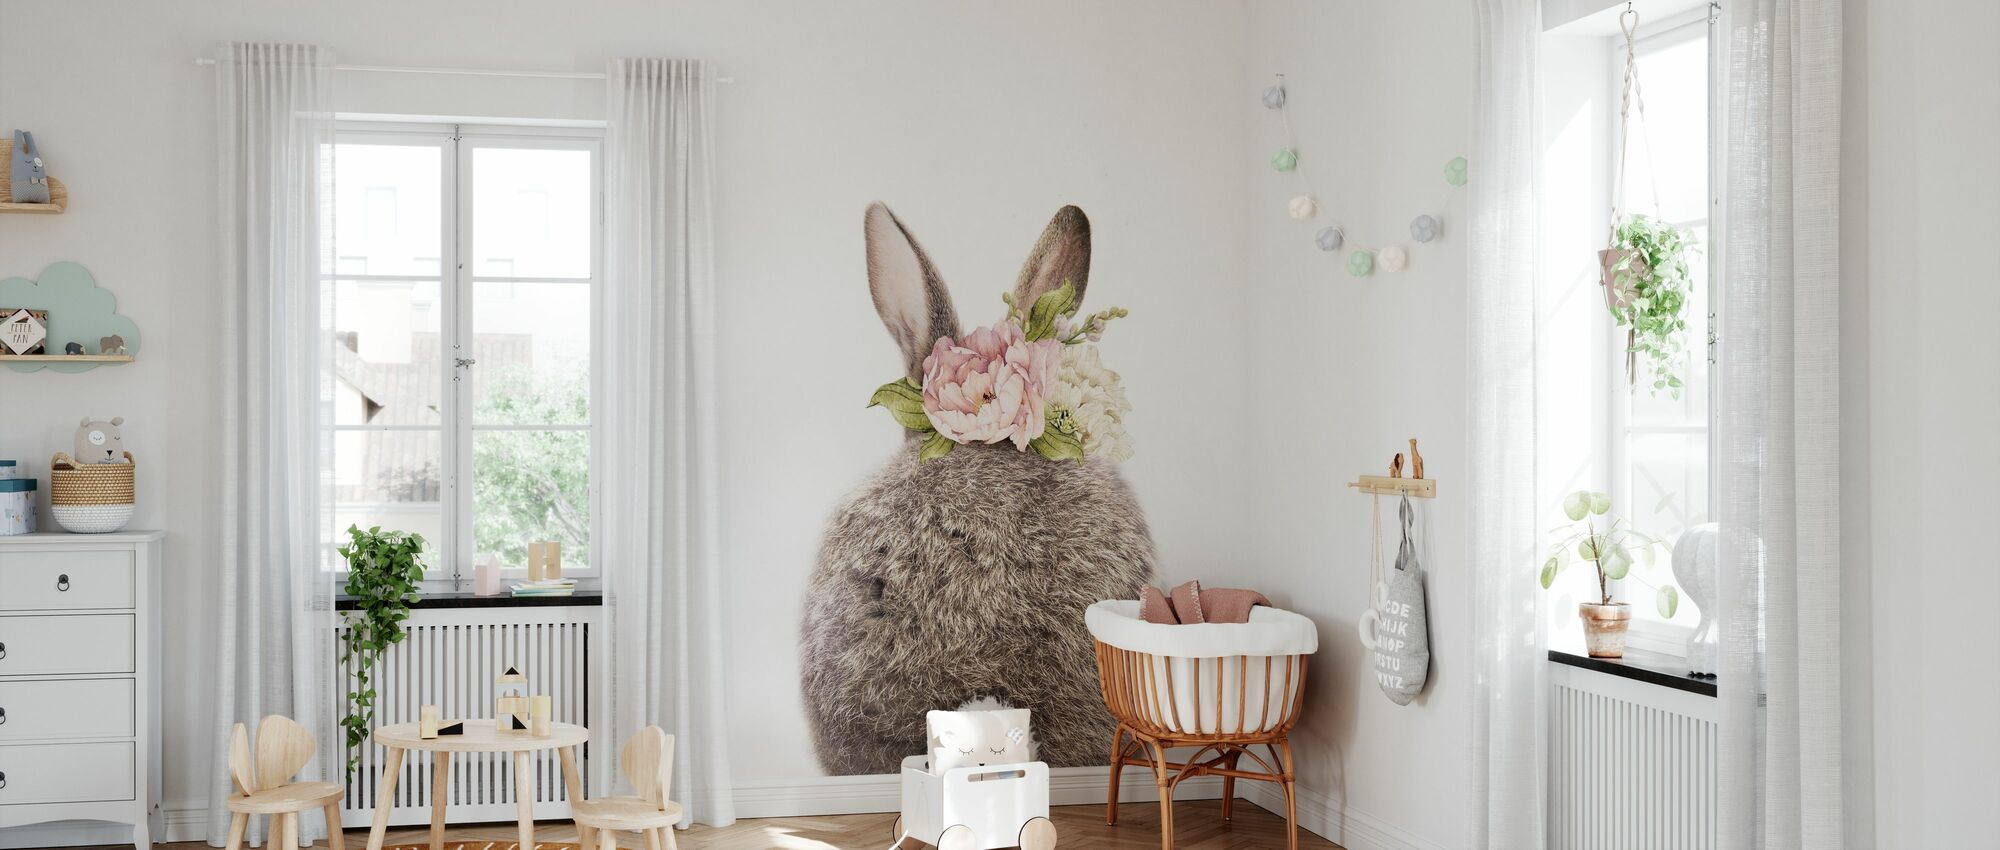 Floral Bunny - Tail - Wallpaper - Nursery